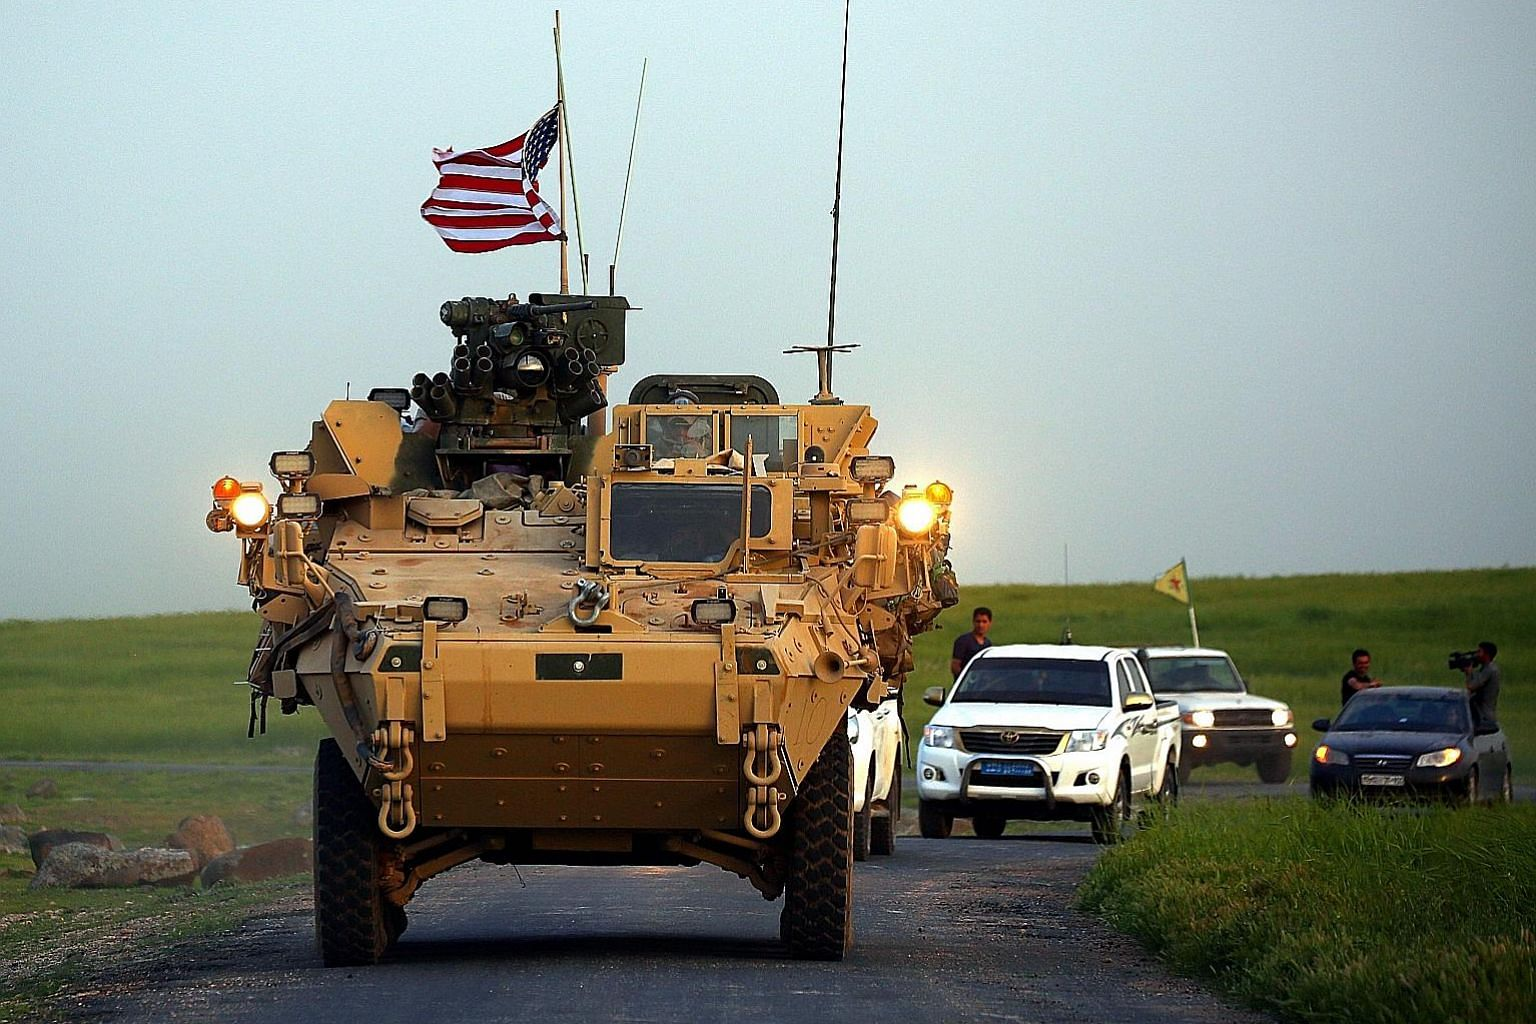 US forces, accompanied by Kurdish fighters of the People's Protection Units, near the Syrian village of Darbasiyah on the border with Turkey. The writer says the pullout of US troops from Syria will leave the Kurds at the mercy of Turkey, which sees